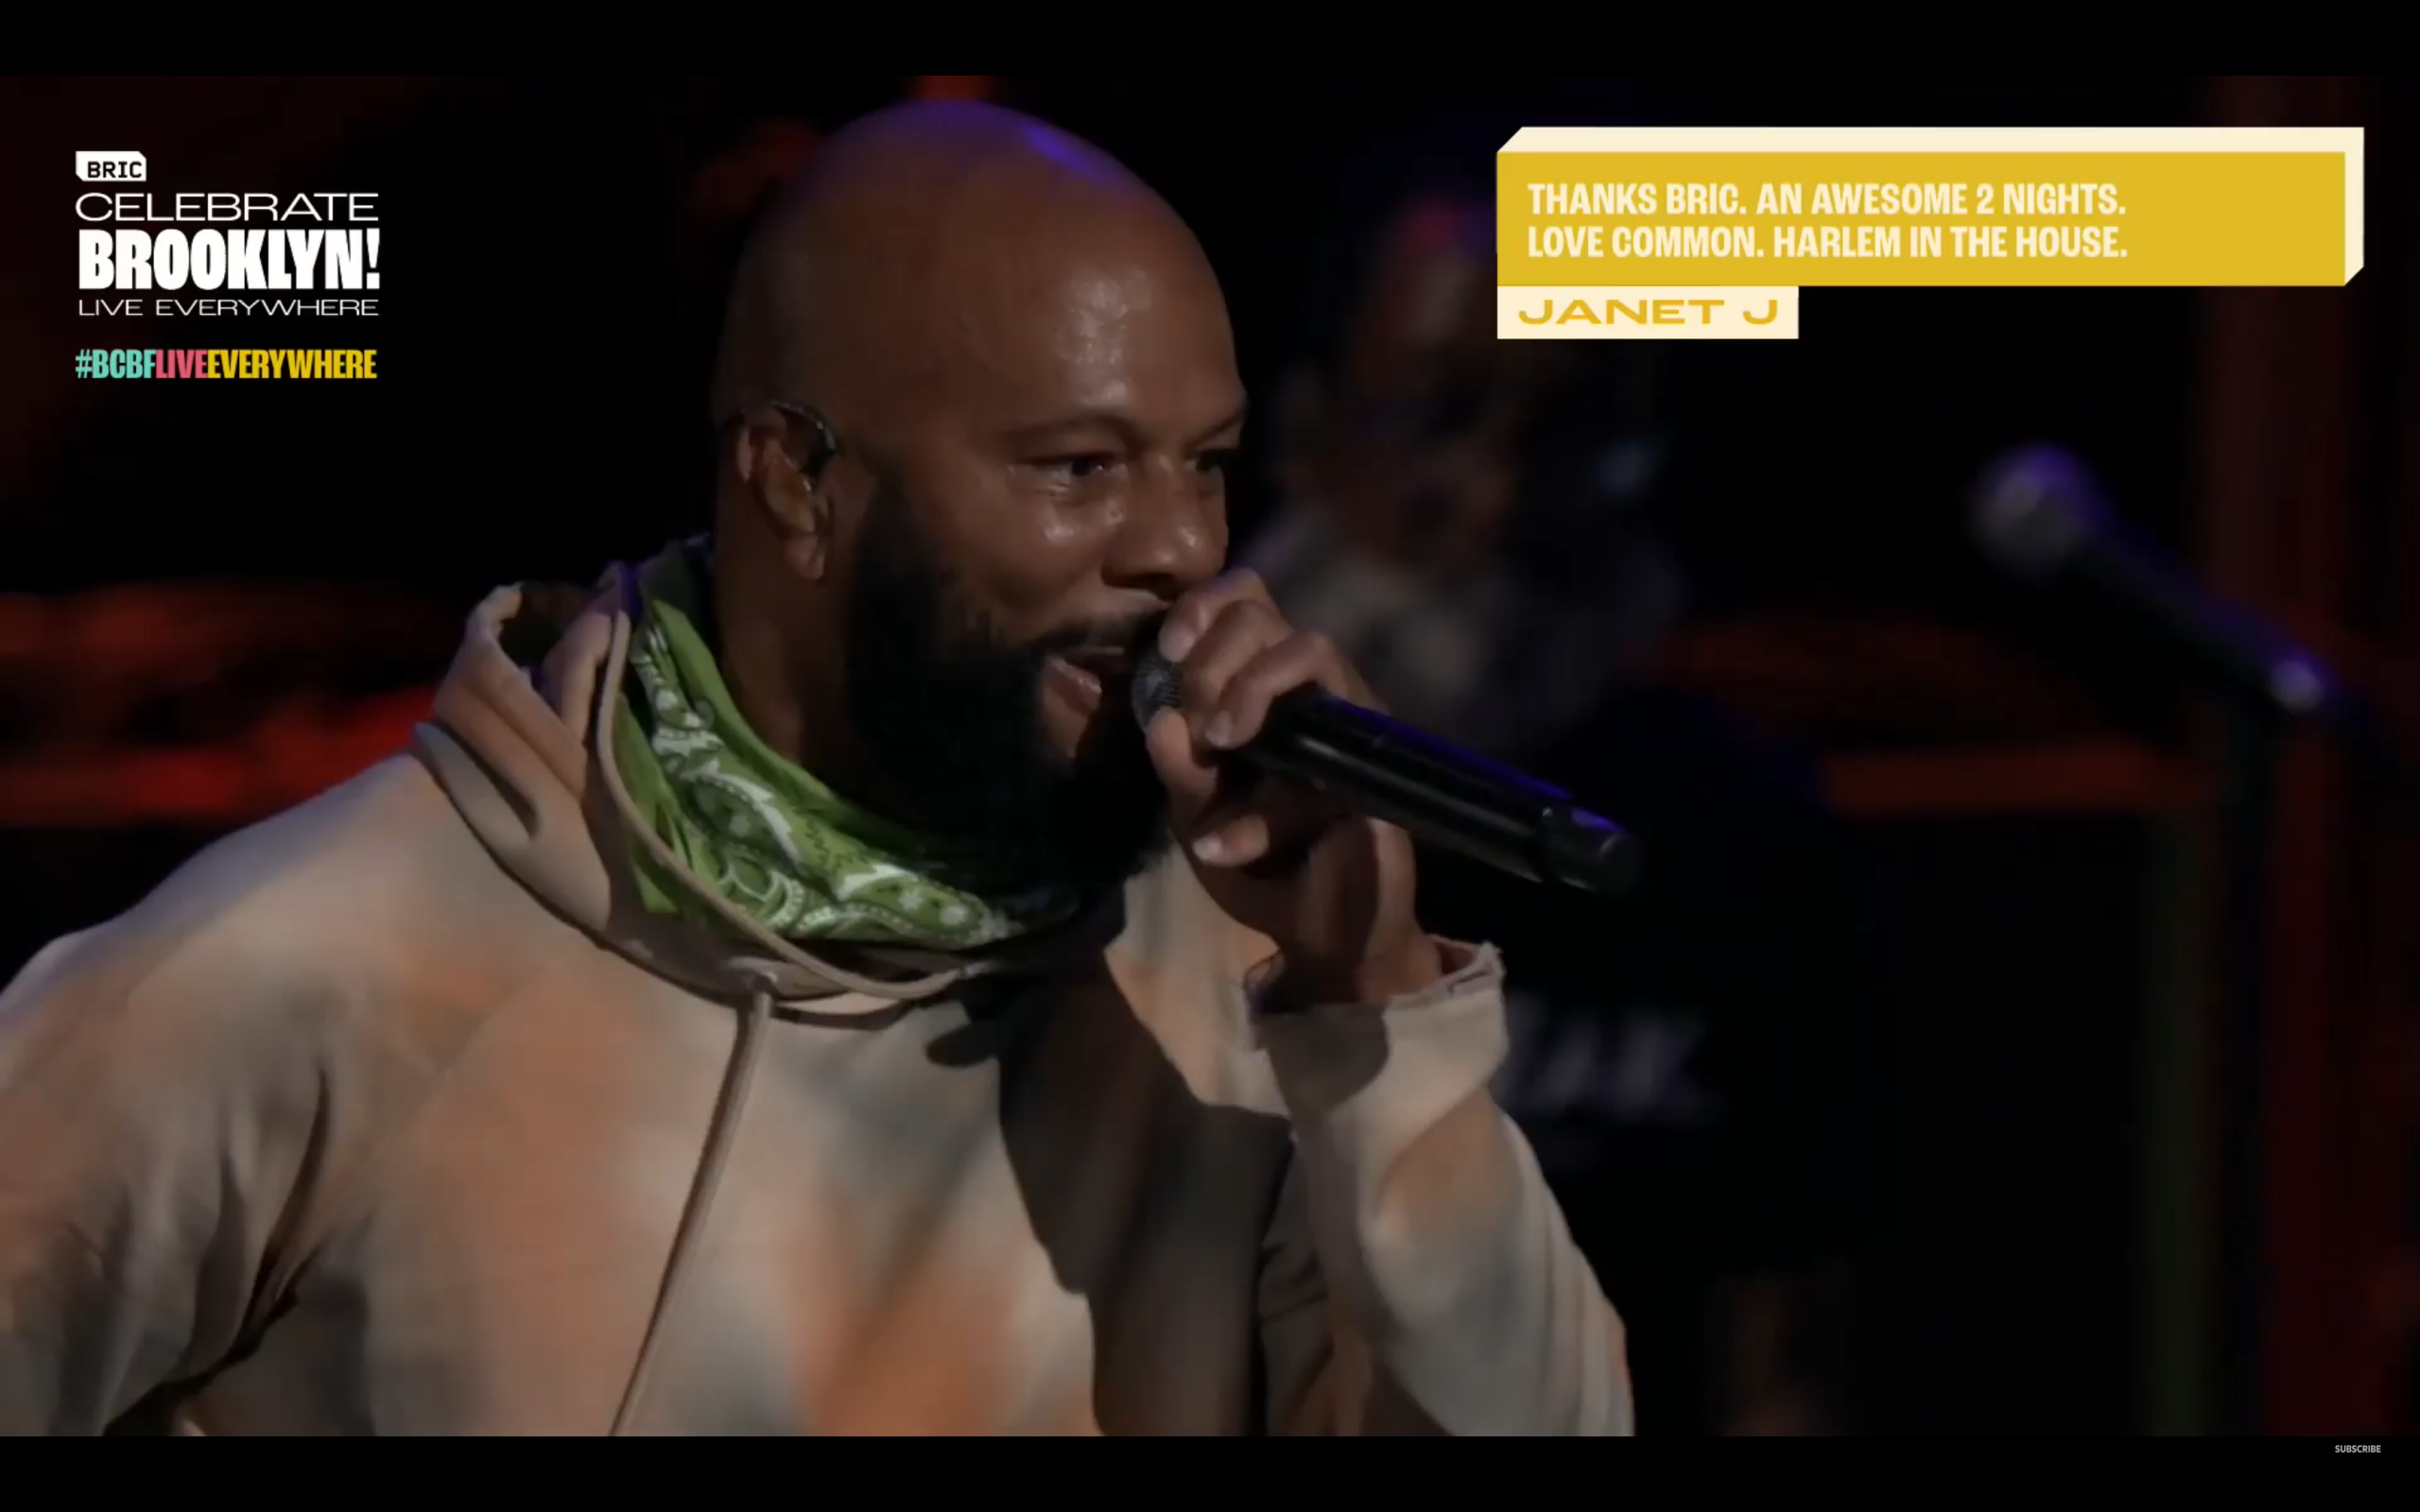 Common performing for BRIC Celebrate Brooklyn